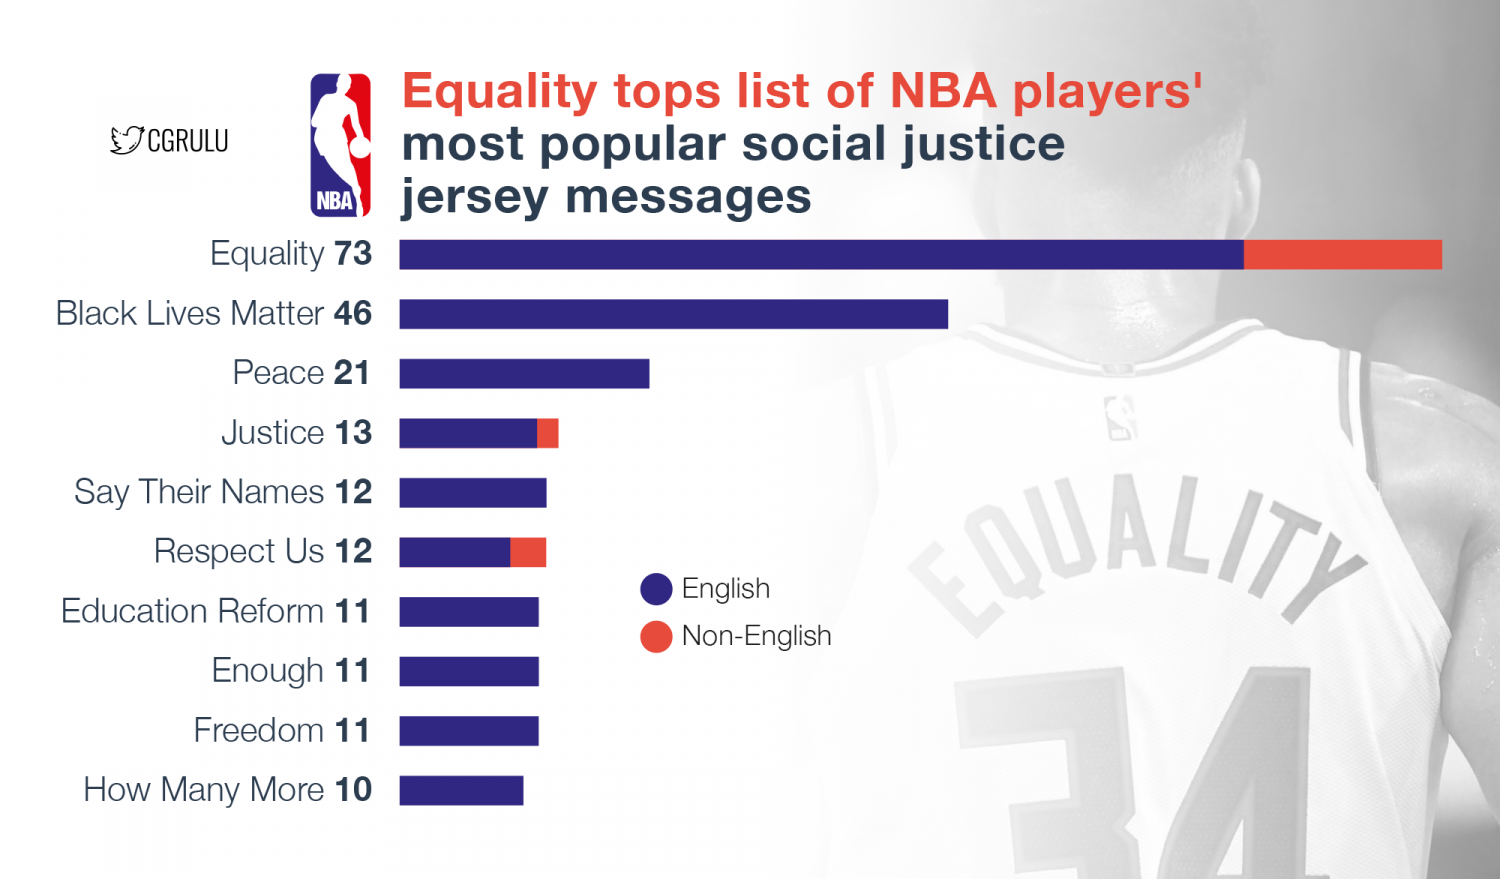 Equality tops list of NBA players' most popular social justice jersey messages Infographic